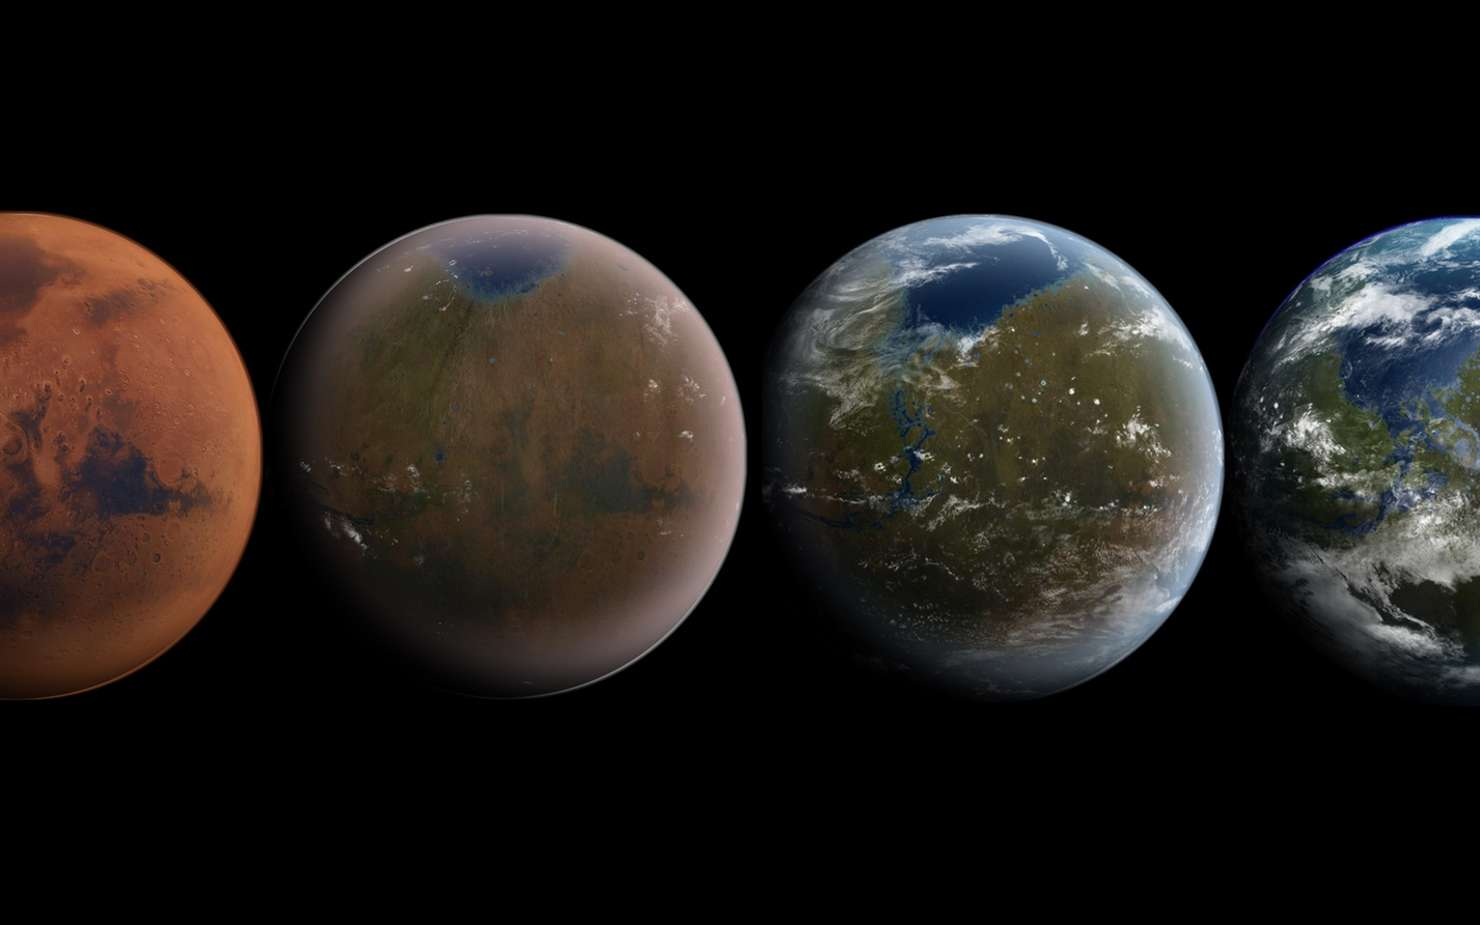 Illustration de Mars terraformée. © Wikimedia, CC by-sa 3.0